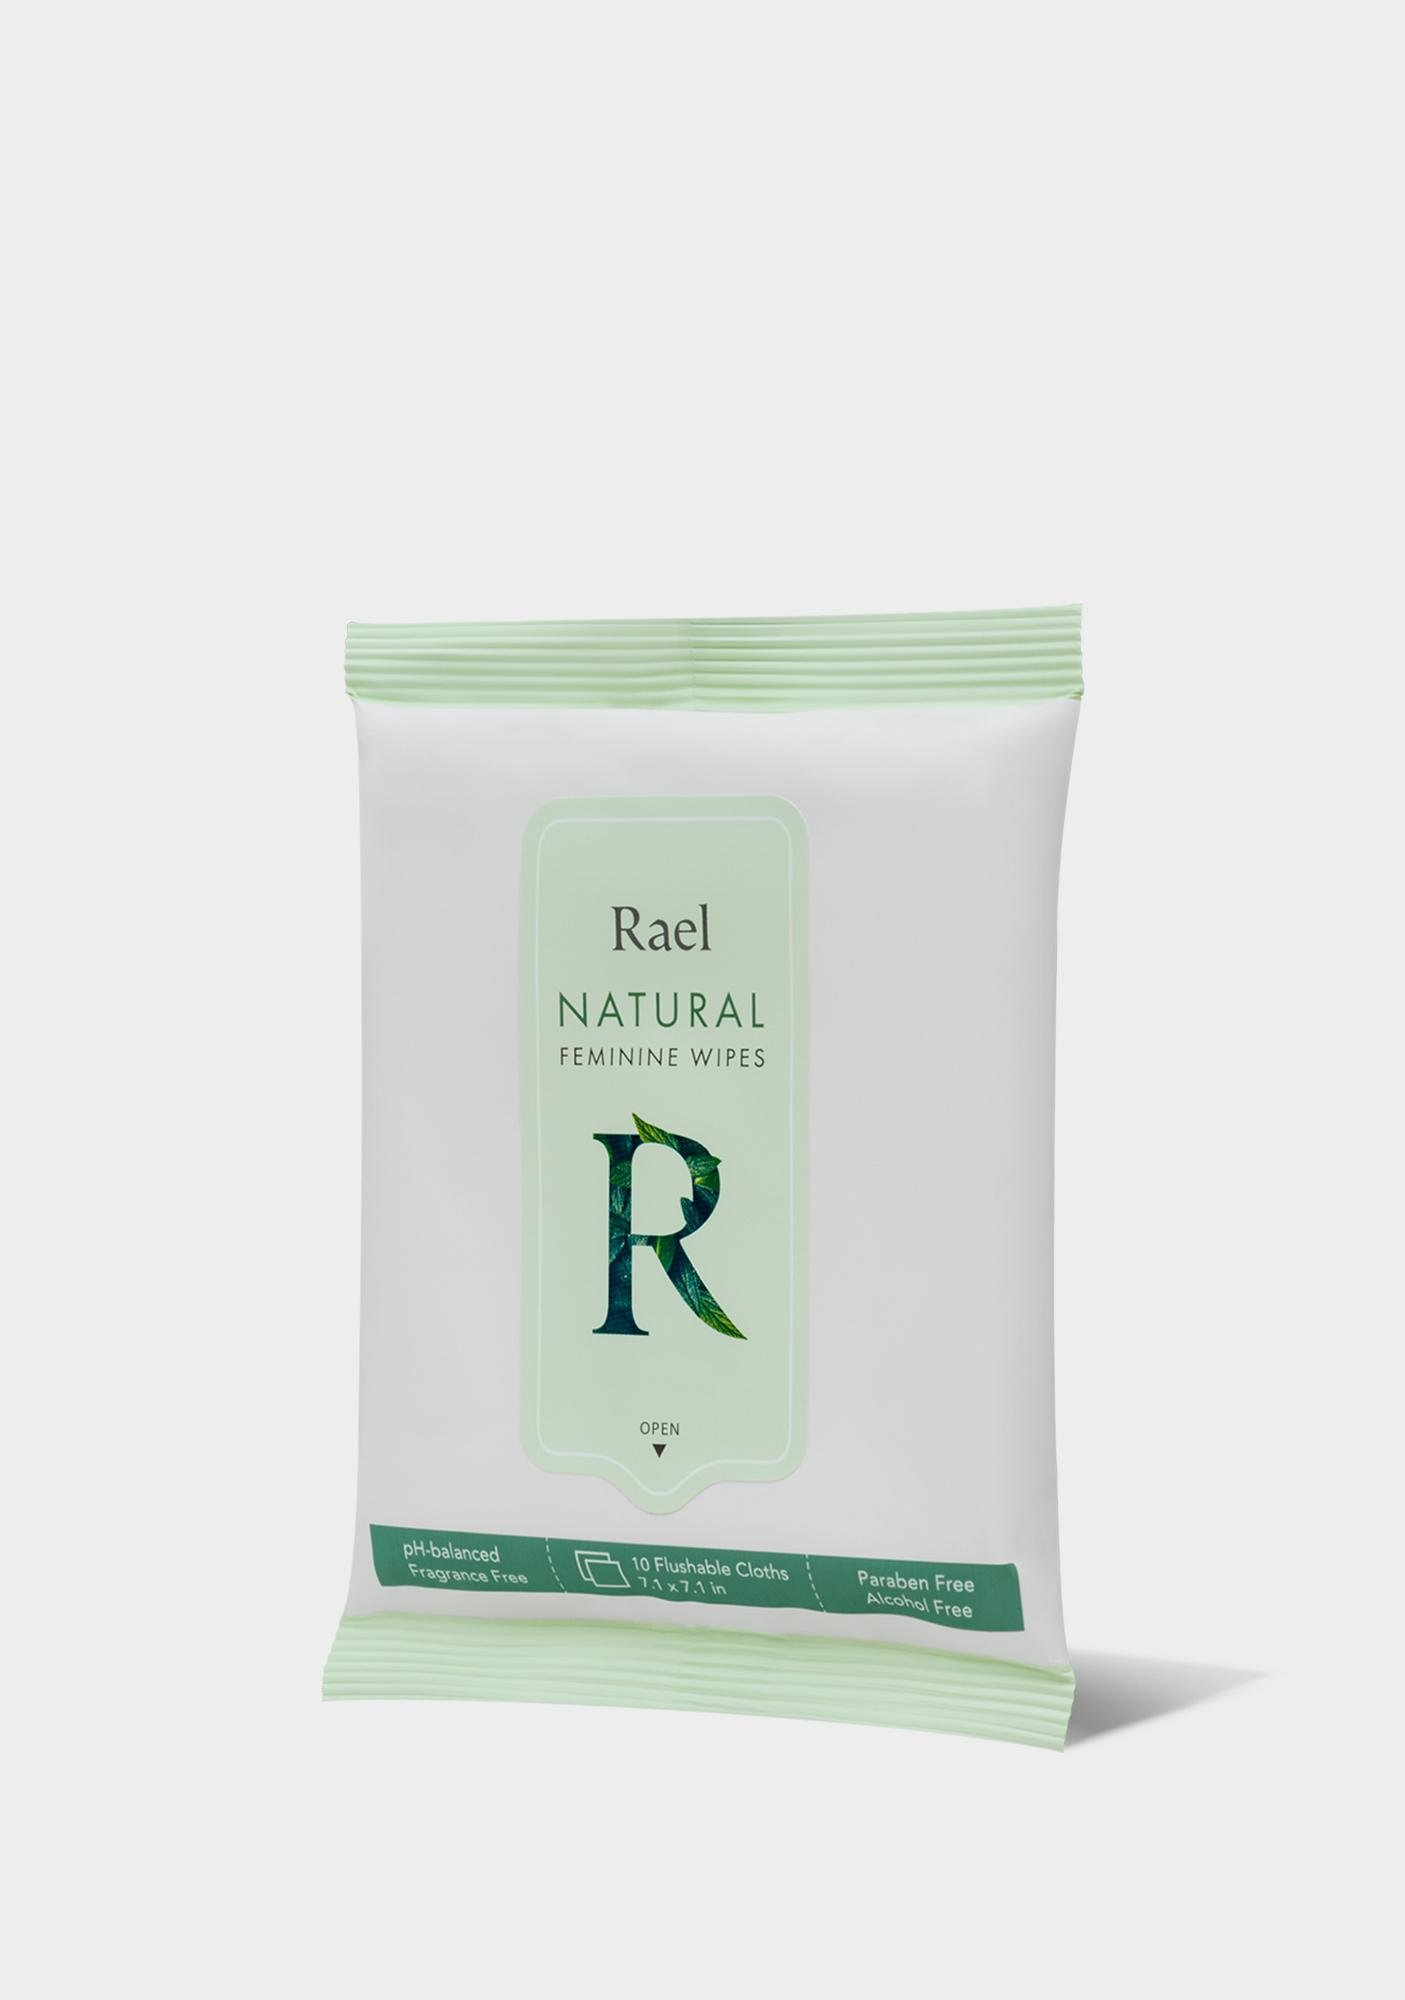 Rael Natural Feminine Wipes